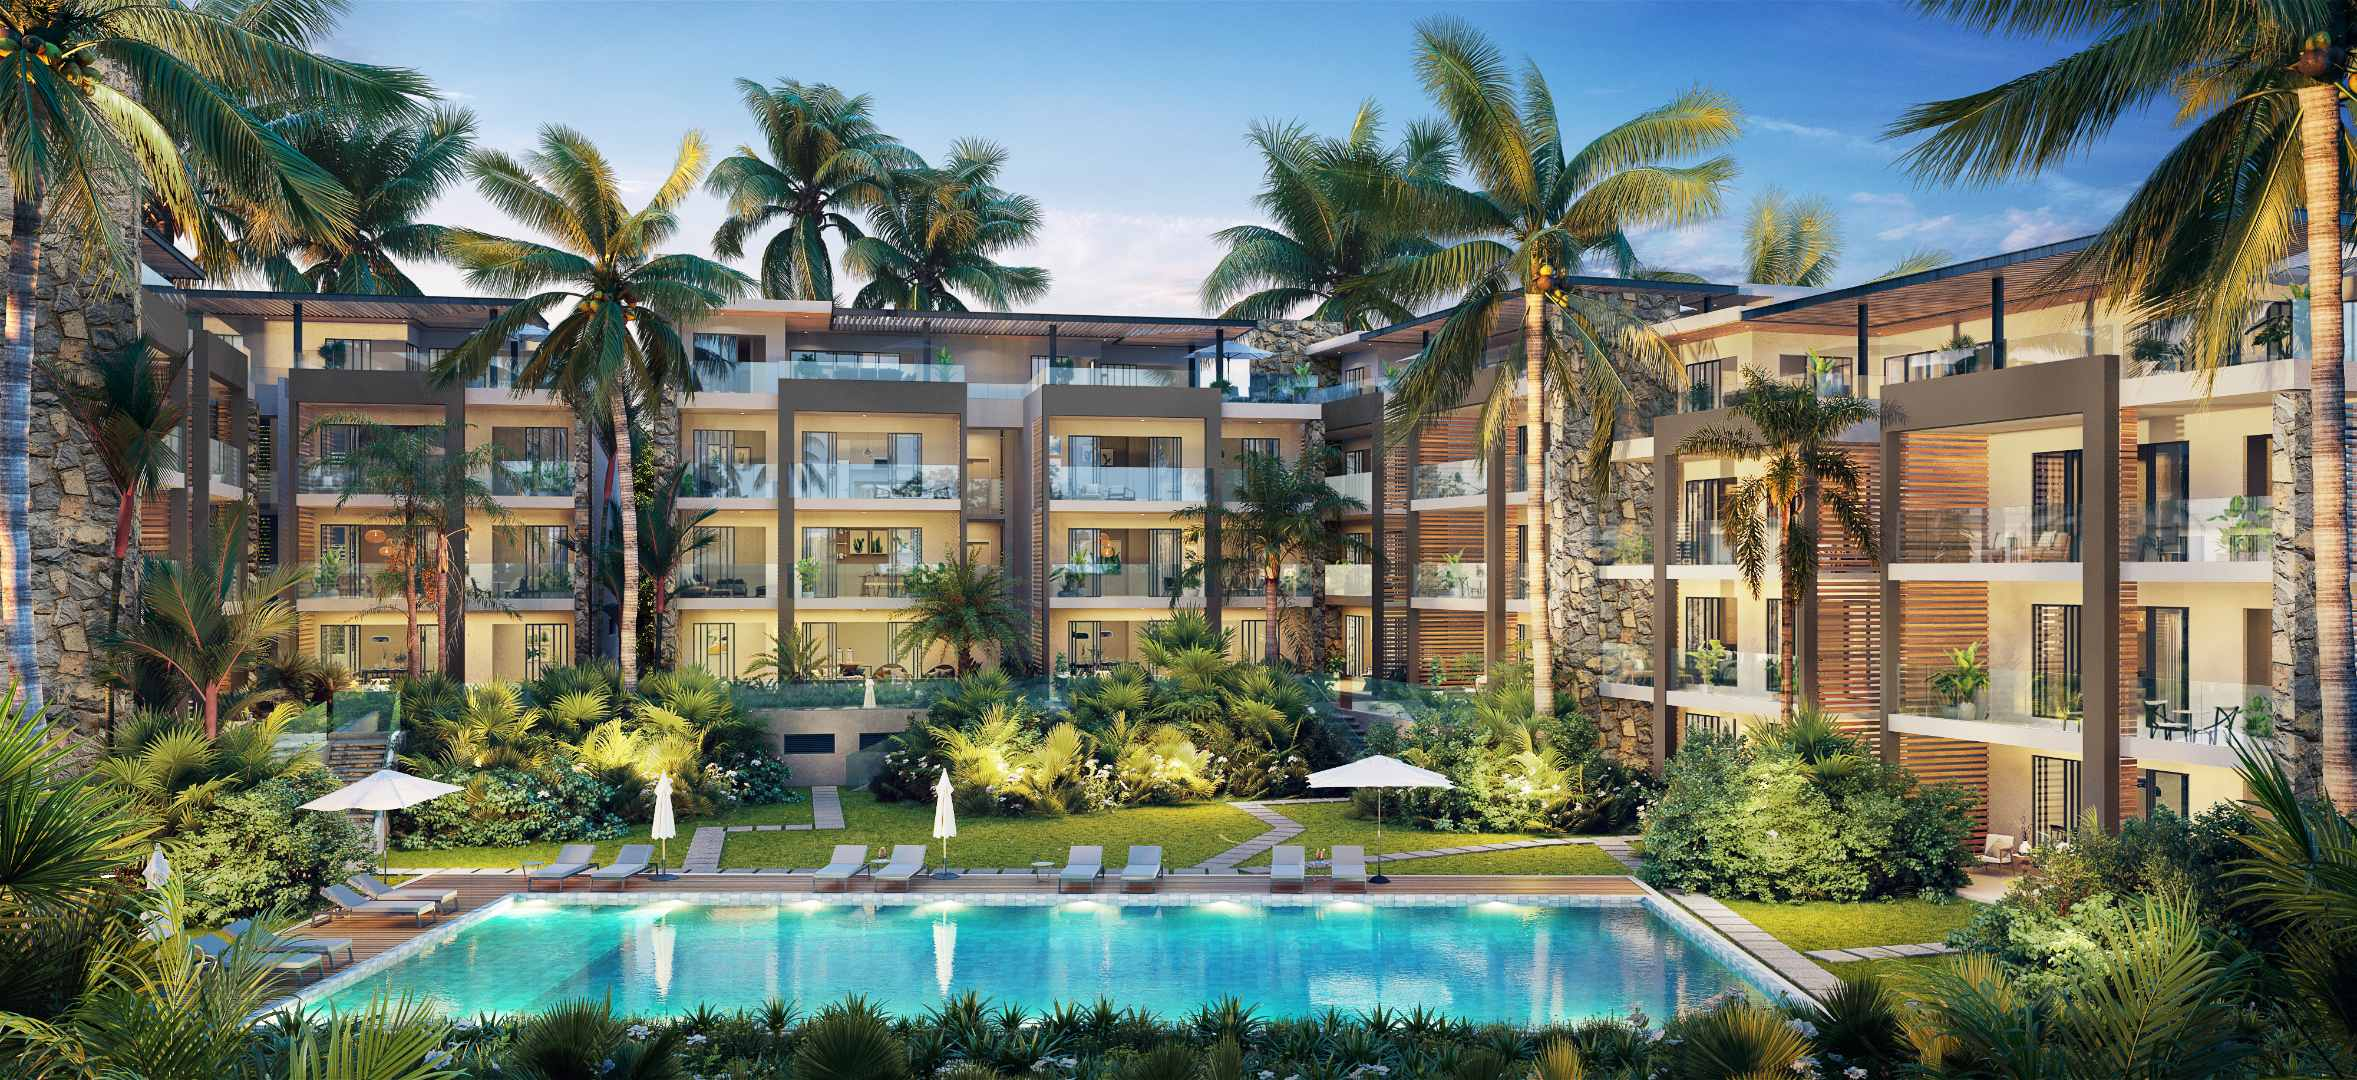 2 Bedroom Apartment / Flat For Sale in Bain Boeuf